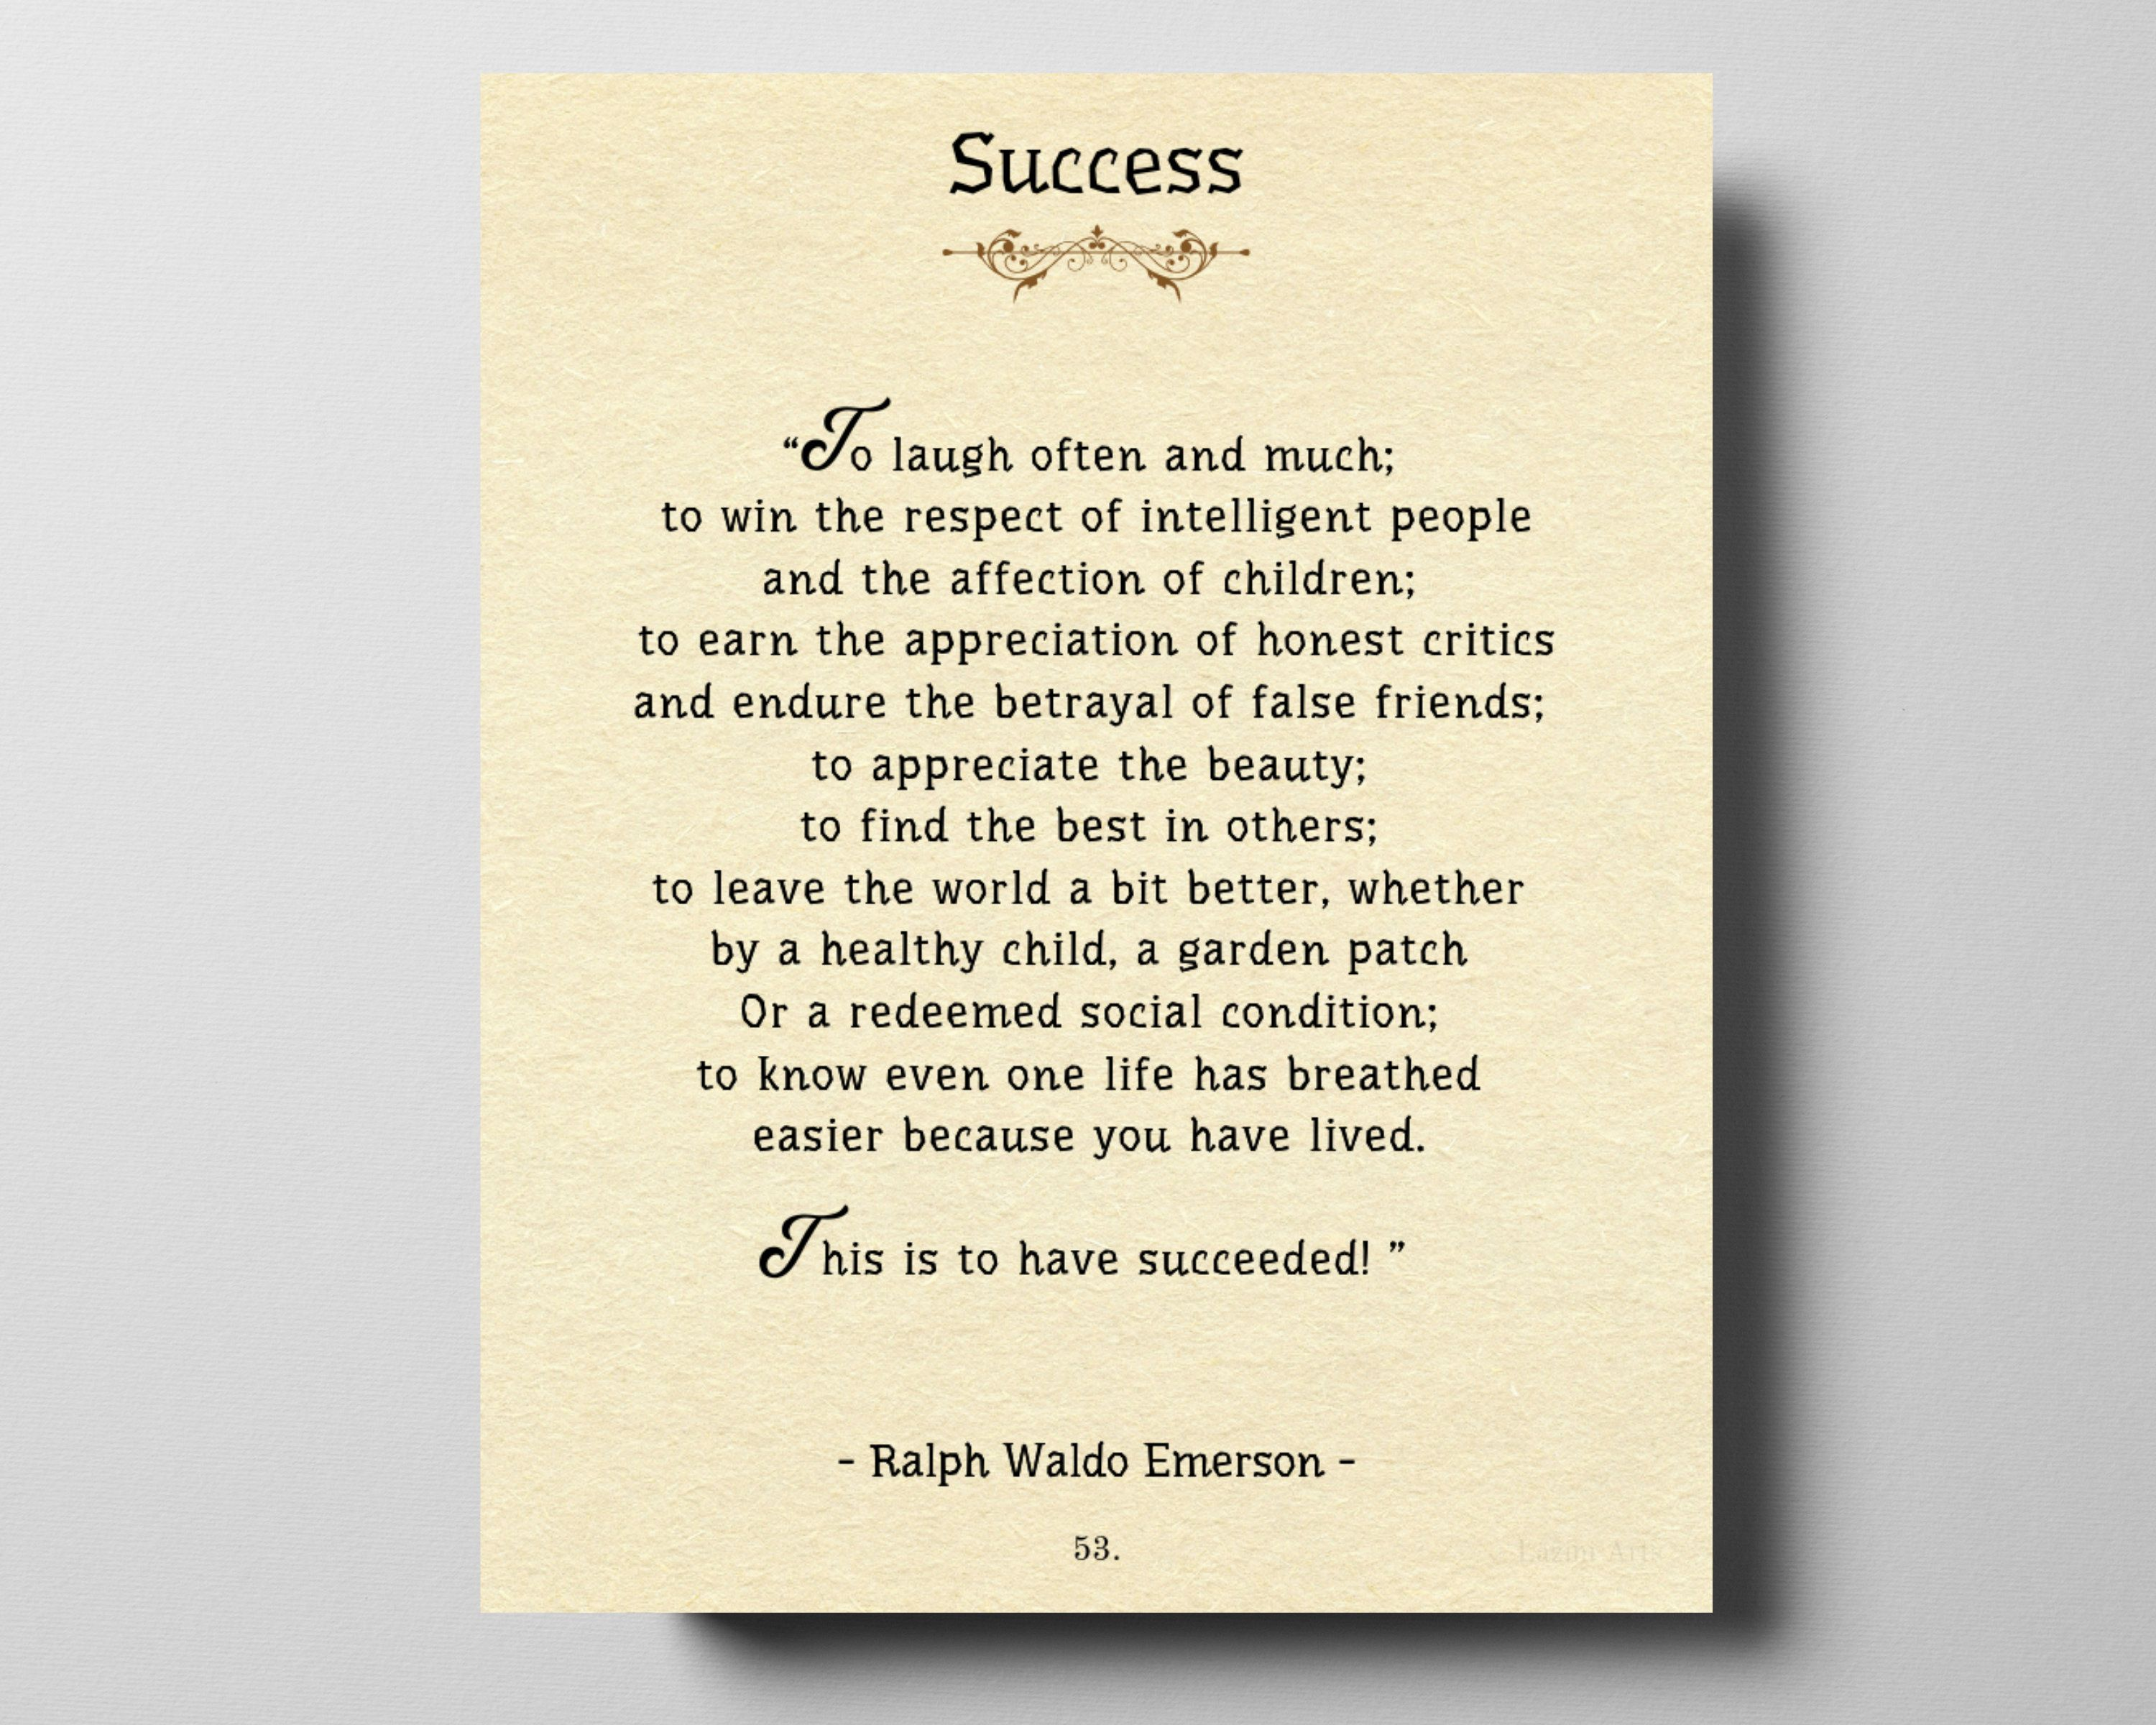 Book Page Art Success Poem By Ralph Waldo Emerson Two Etsy In 2020 Success Poem Book Page Art Book Pages